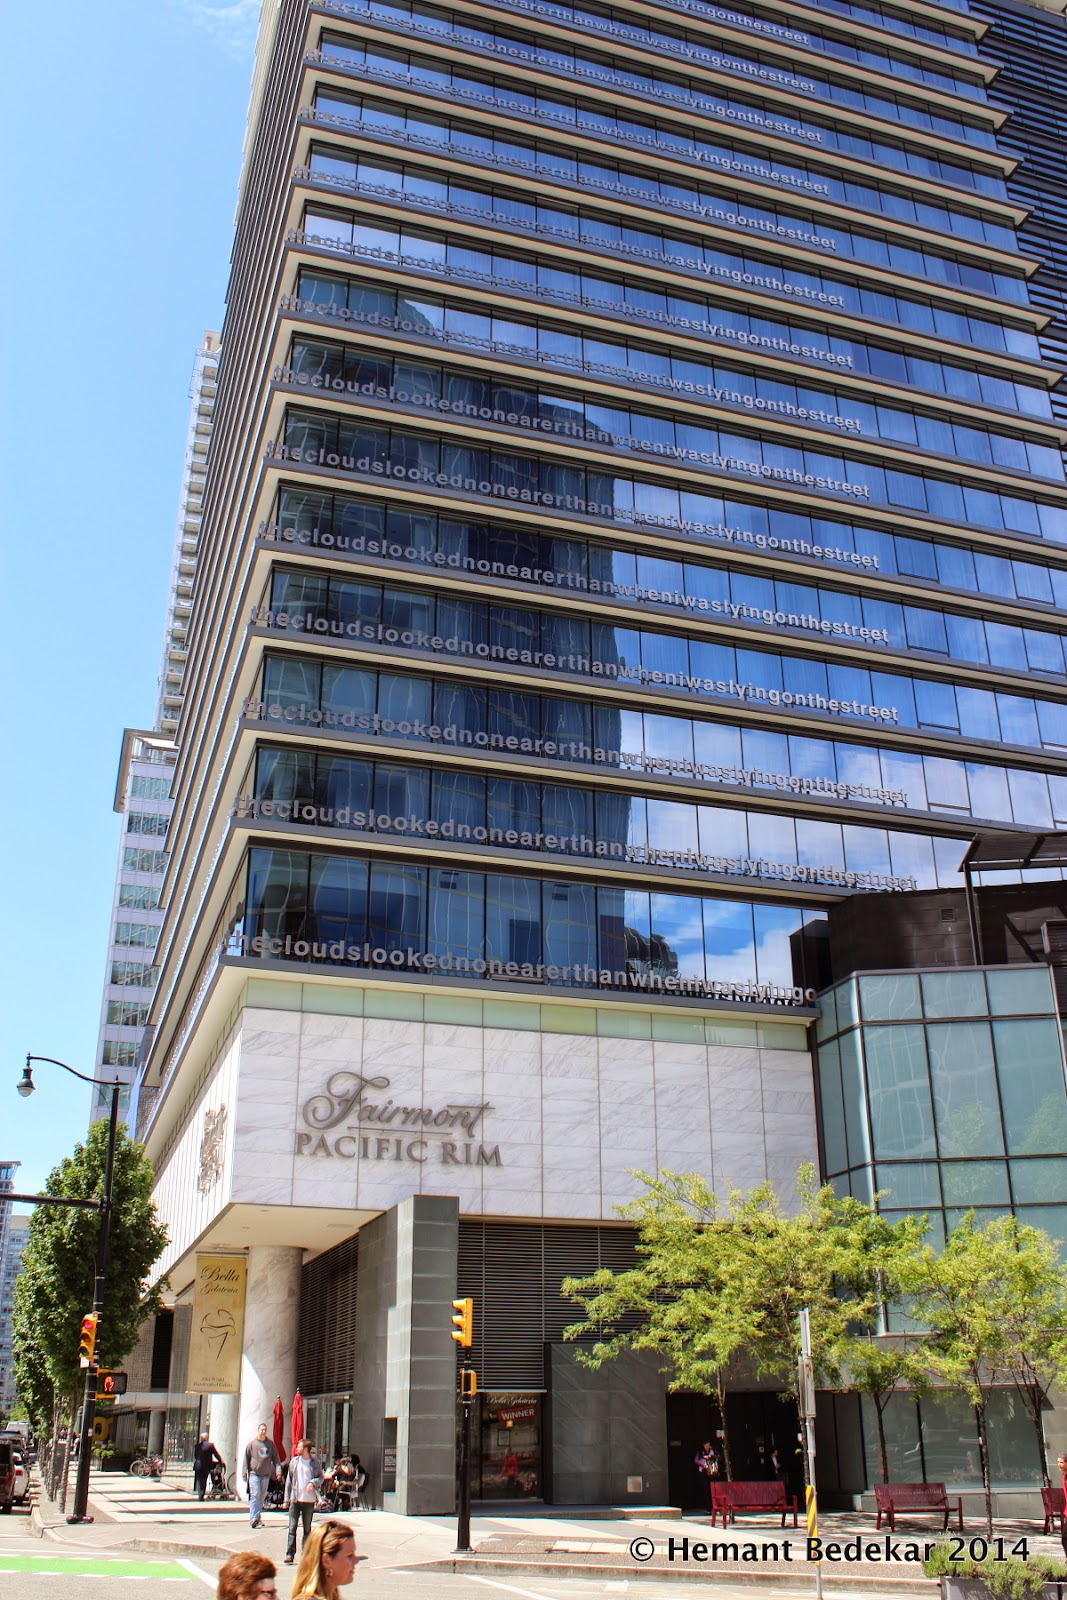 """""""Lying on top of a building… the clouds looked no nearer than when i was lying on the street"""" at the Fairmont Pacific Rim hotel"""